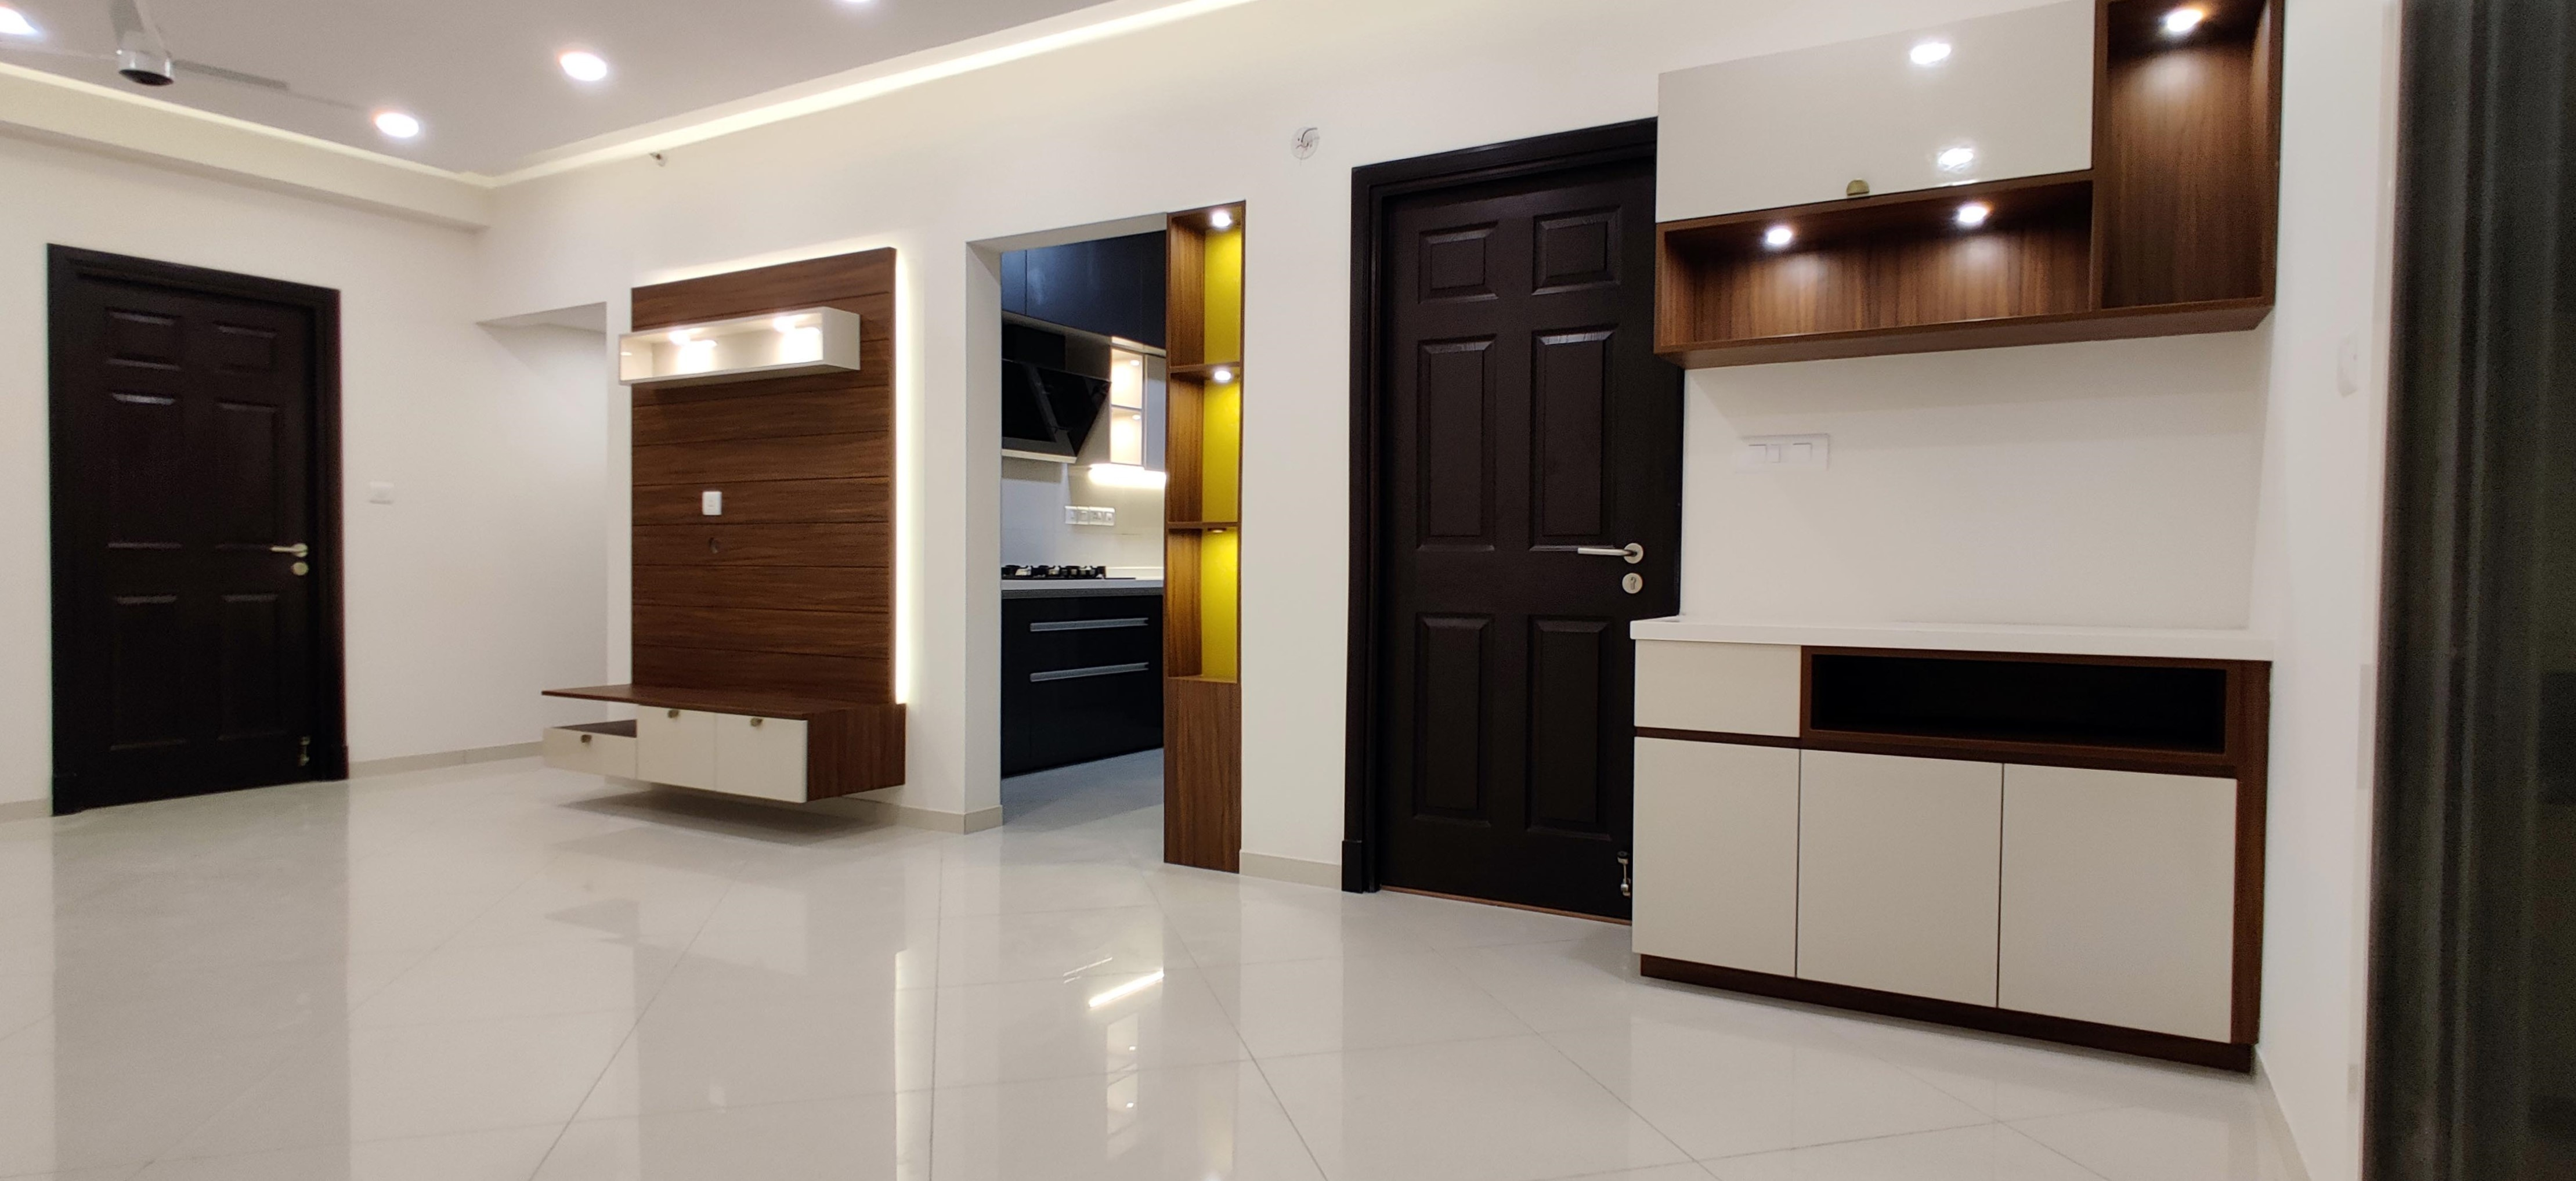 Crockery unit in white in living room, in solid wood and laminate